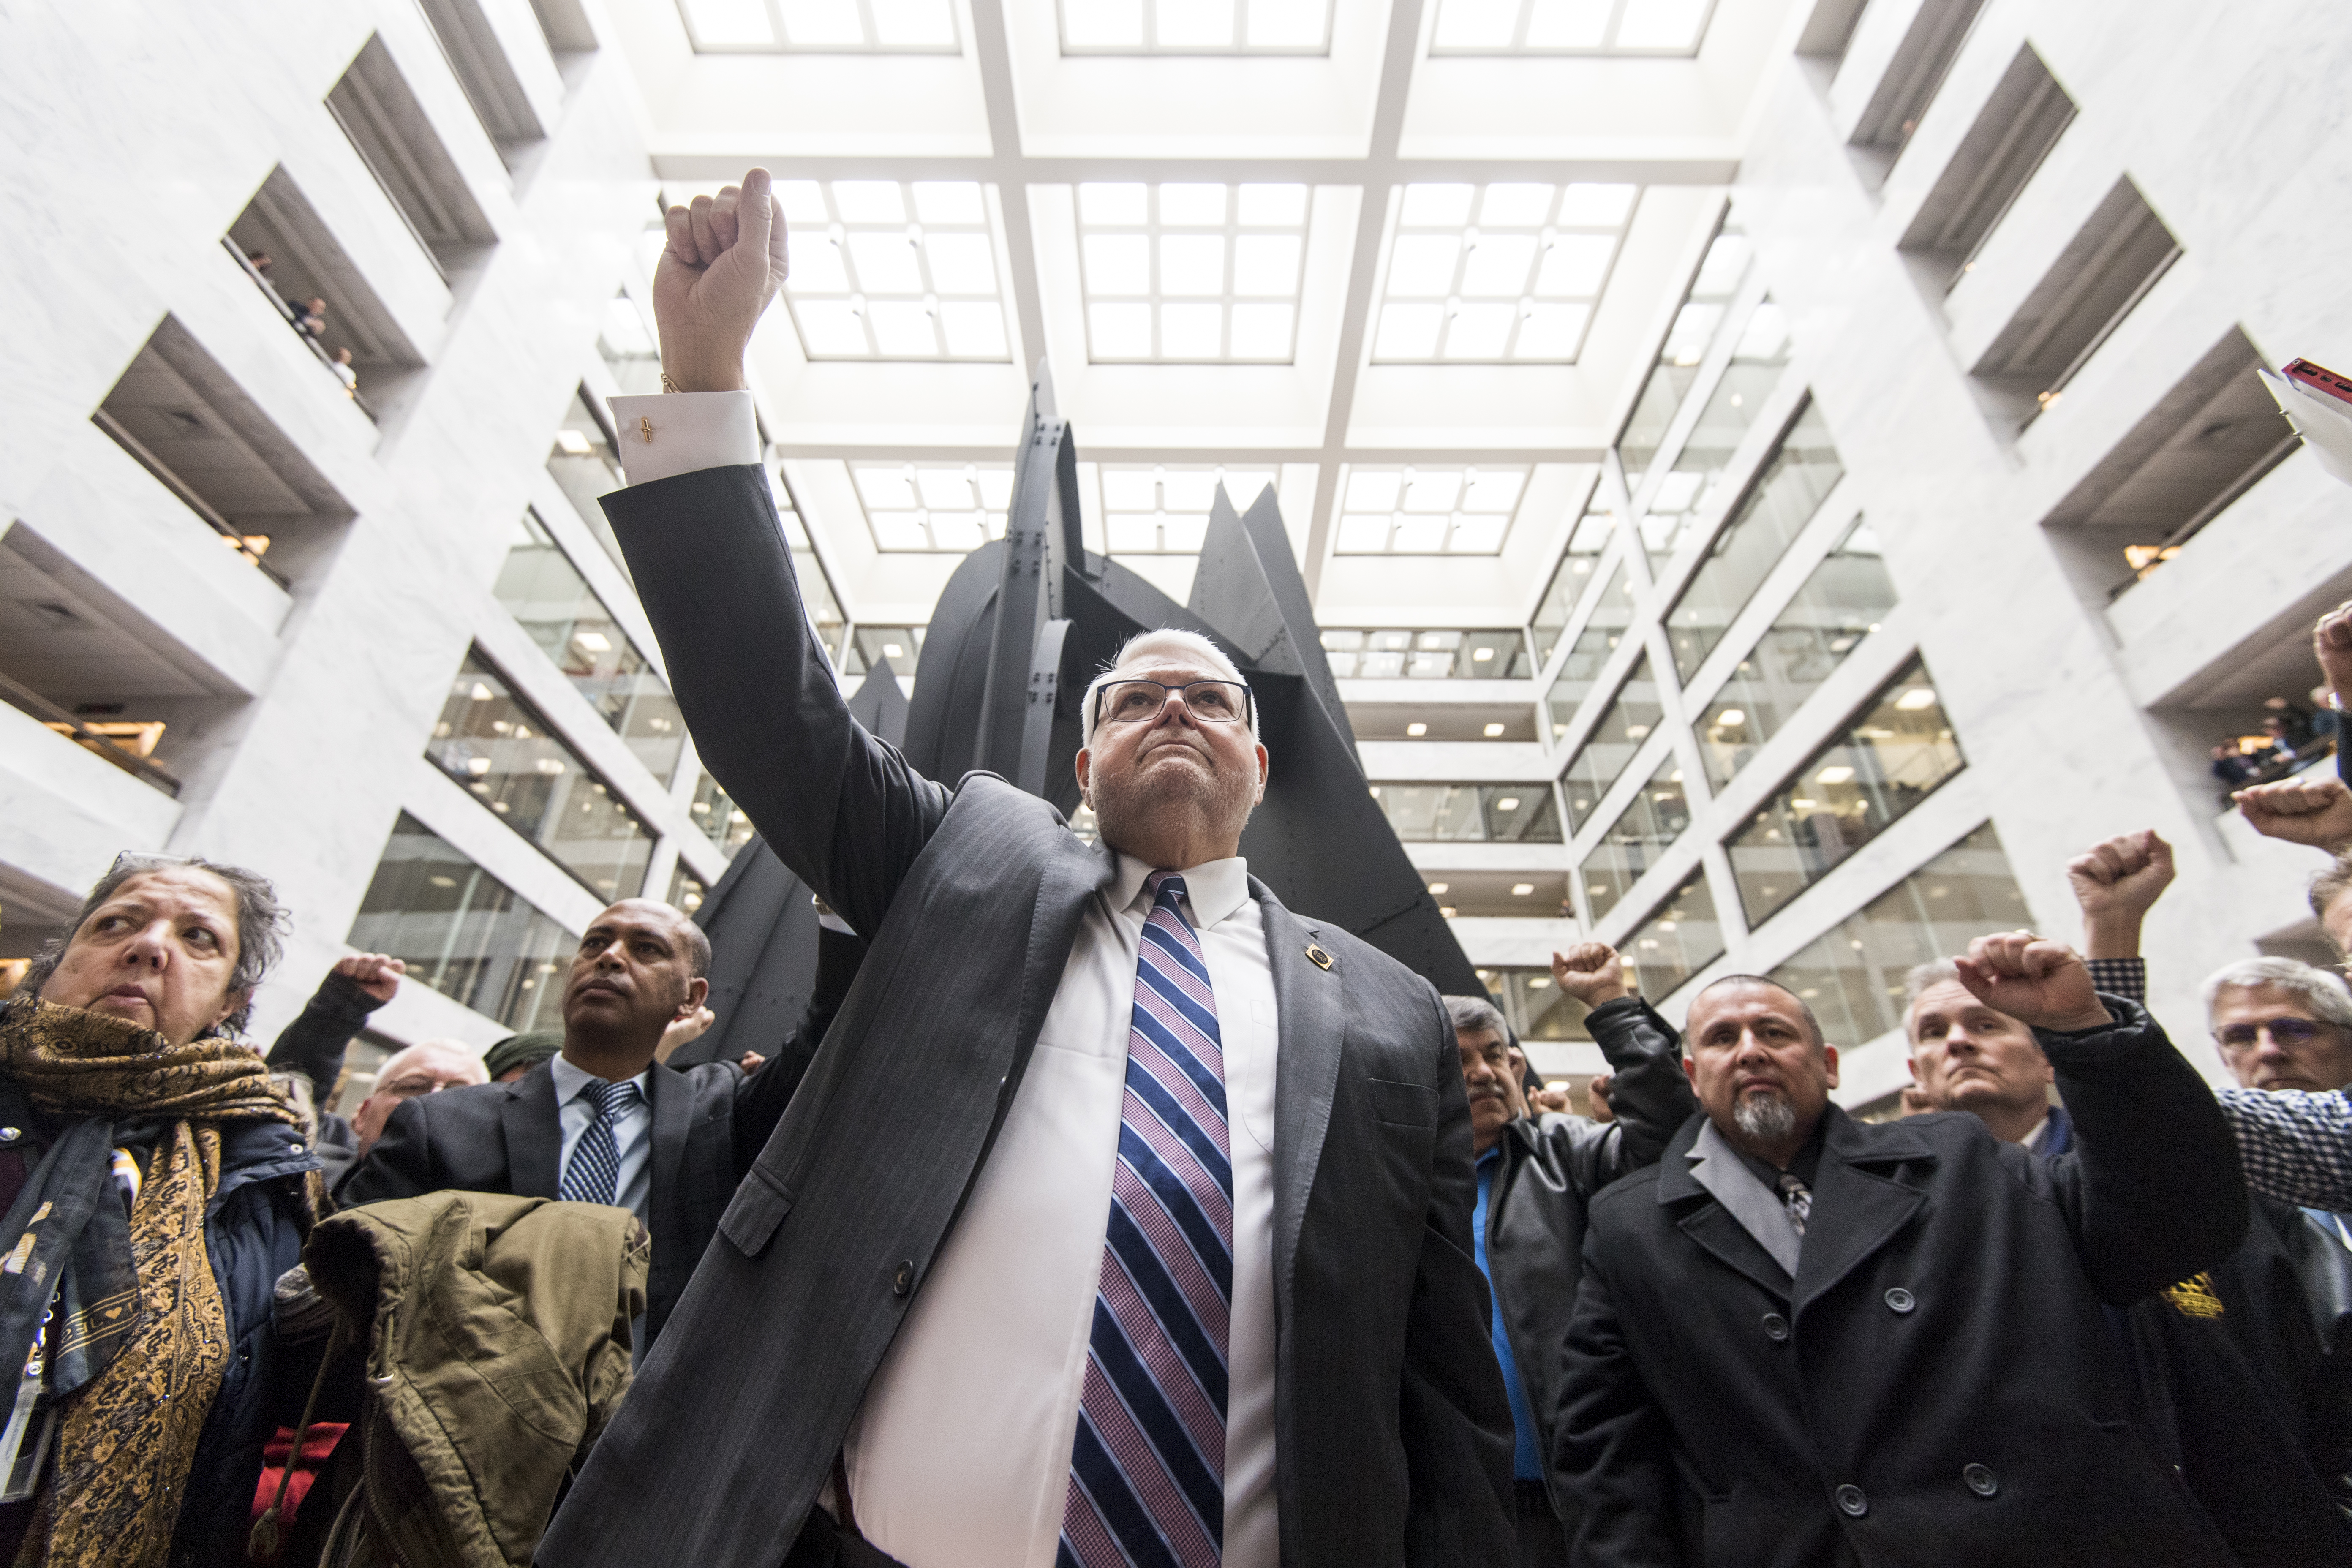 UNITED STATES - FEBRUARY 13: J. David Cox Sr., president of the American Federation of Government Employees, holds up his fist as federal workers hold a sildent protest for 35 minutes in the Hart Senate Office Building to call on law makers and President Trump to keep the government open on Wednesday, Feb. 13, 2019. (Photo By Bill Clark/CQ Roll Call)